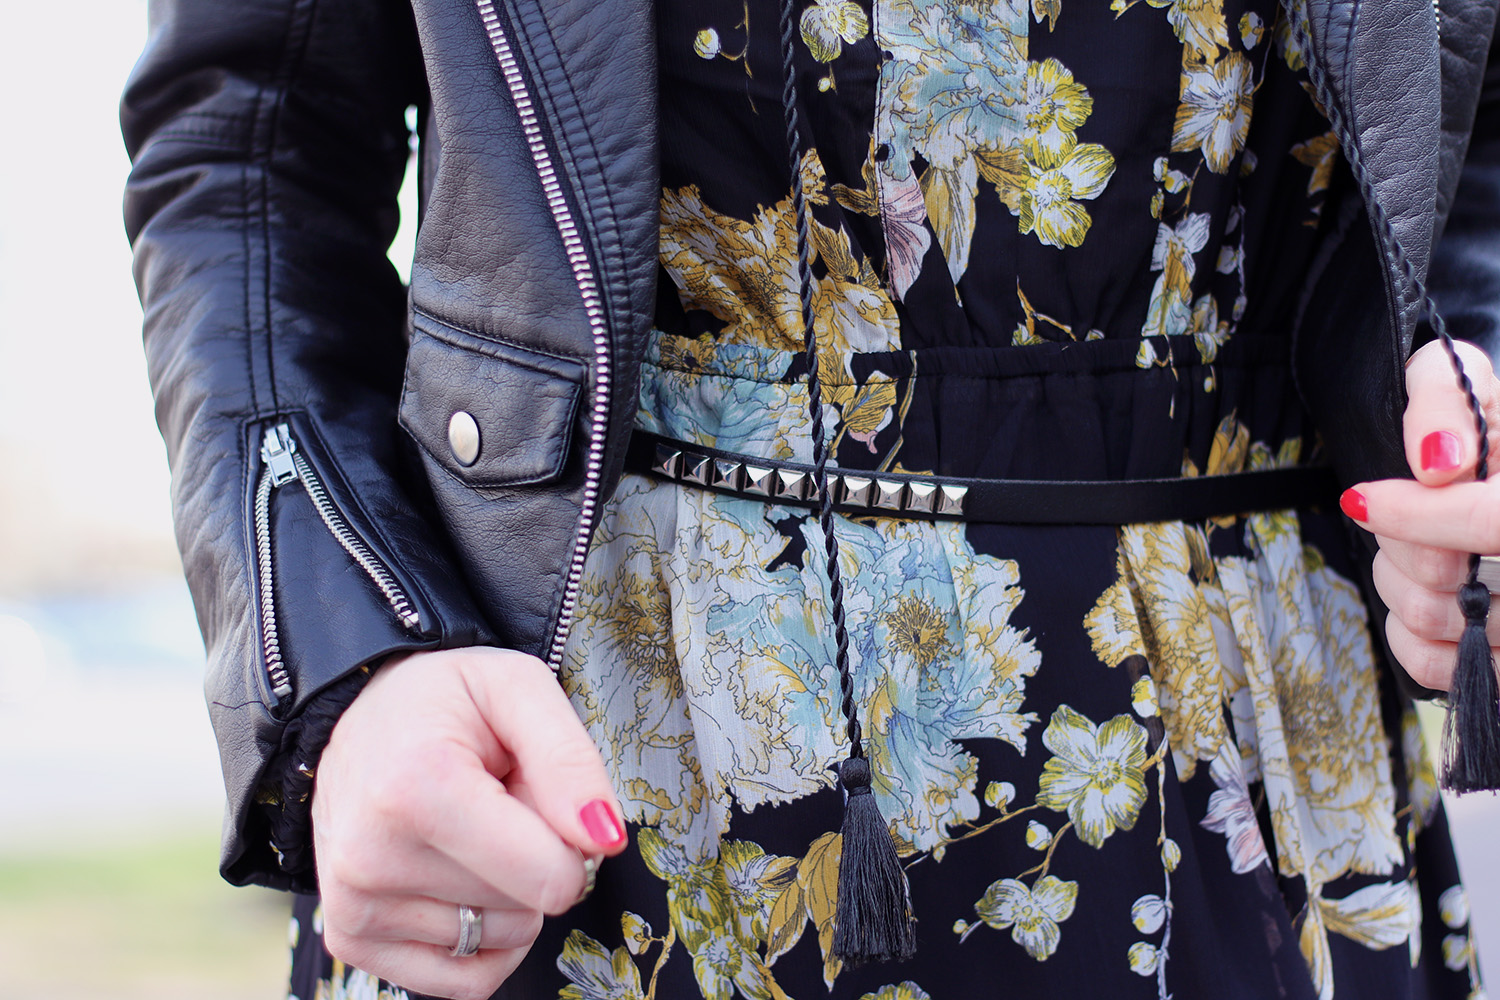 Details, Gürtel mit silbernen Nieten, Maxikleid, Blumen Print, Gelb, Türkis, schwarze Biker Jacke, Frühling, Mode, Trend, Hippie, Coachella, Outfit, Frühlingsmode, blonde Haare, helle Haut, Influencer, Deutschland, Berlin, Streetstyle, Mode Blog, Advance Your Style, advanceyourstyle